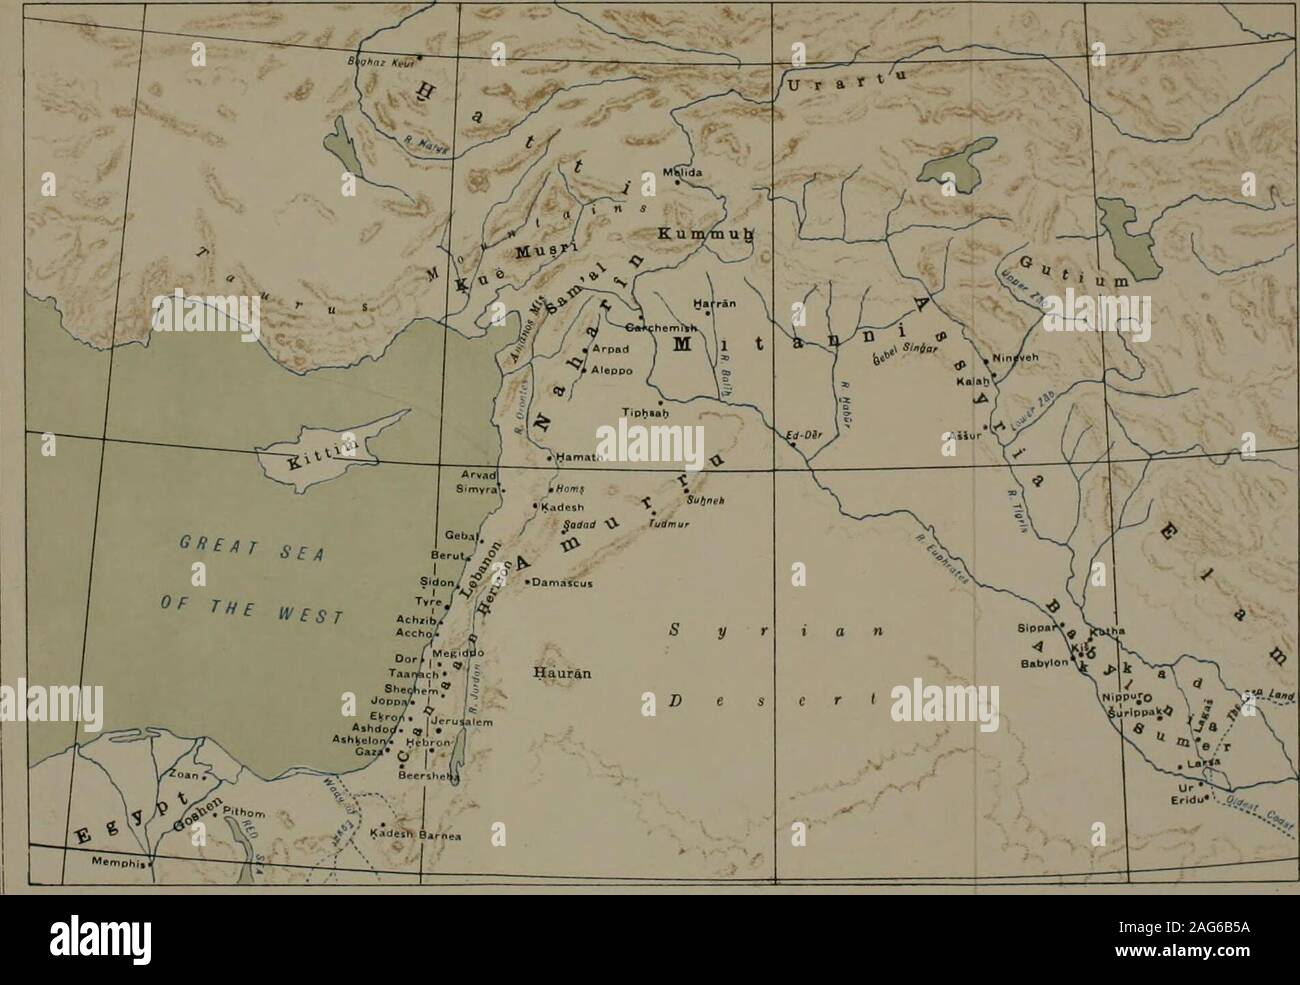 . Israel's settlement in Canaan; the Biblical tradition and its historical background. 18 xii. 28 . 49 i. 16, 17 . 13,11 ?, 27, 28 ff. xii. 31 . 49 i. 18 . 18 xiv. 25-28 . 8 i. 19 . 18 f. i. 20, 10 b, 11-15 . 14, 18, 31 2 Kings : i. 22fF. . 19 ix. 15 3 i. 27-29 . 19 X. 32, 33 3 i. 30 ... 22, 51 xiii. 22-25 .... 3 i. 31,32 . 22 xiv. 7 86 i. 33 . 22 i. 34 . 22 f. 1 Chronicles: i. 35 . 24 ii . . 30 104 INDEX OF BIBLICAL REFERENCES 1 Chrokicles {continued): page Jeremiah: page vi. 3-10 . 4 V. 6 . 39 vi. 61 . 25 vi. 70 . 19 Lamentations : xi. 12 . . 88 iv. 5 . 57 si. 26 . . 88 iv. 11 . . . 40 2 Chr Stock Photo